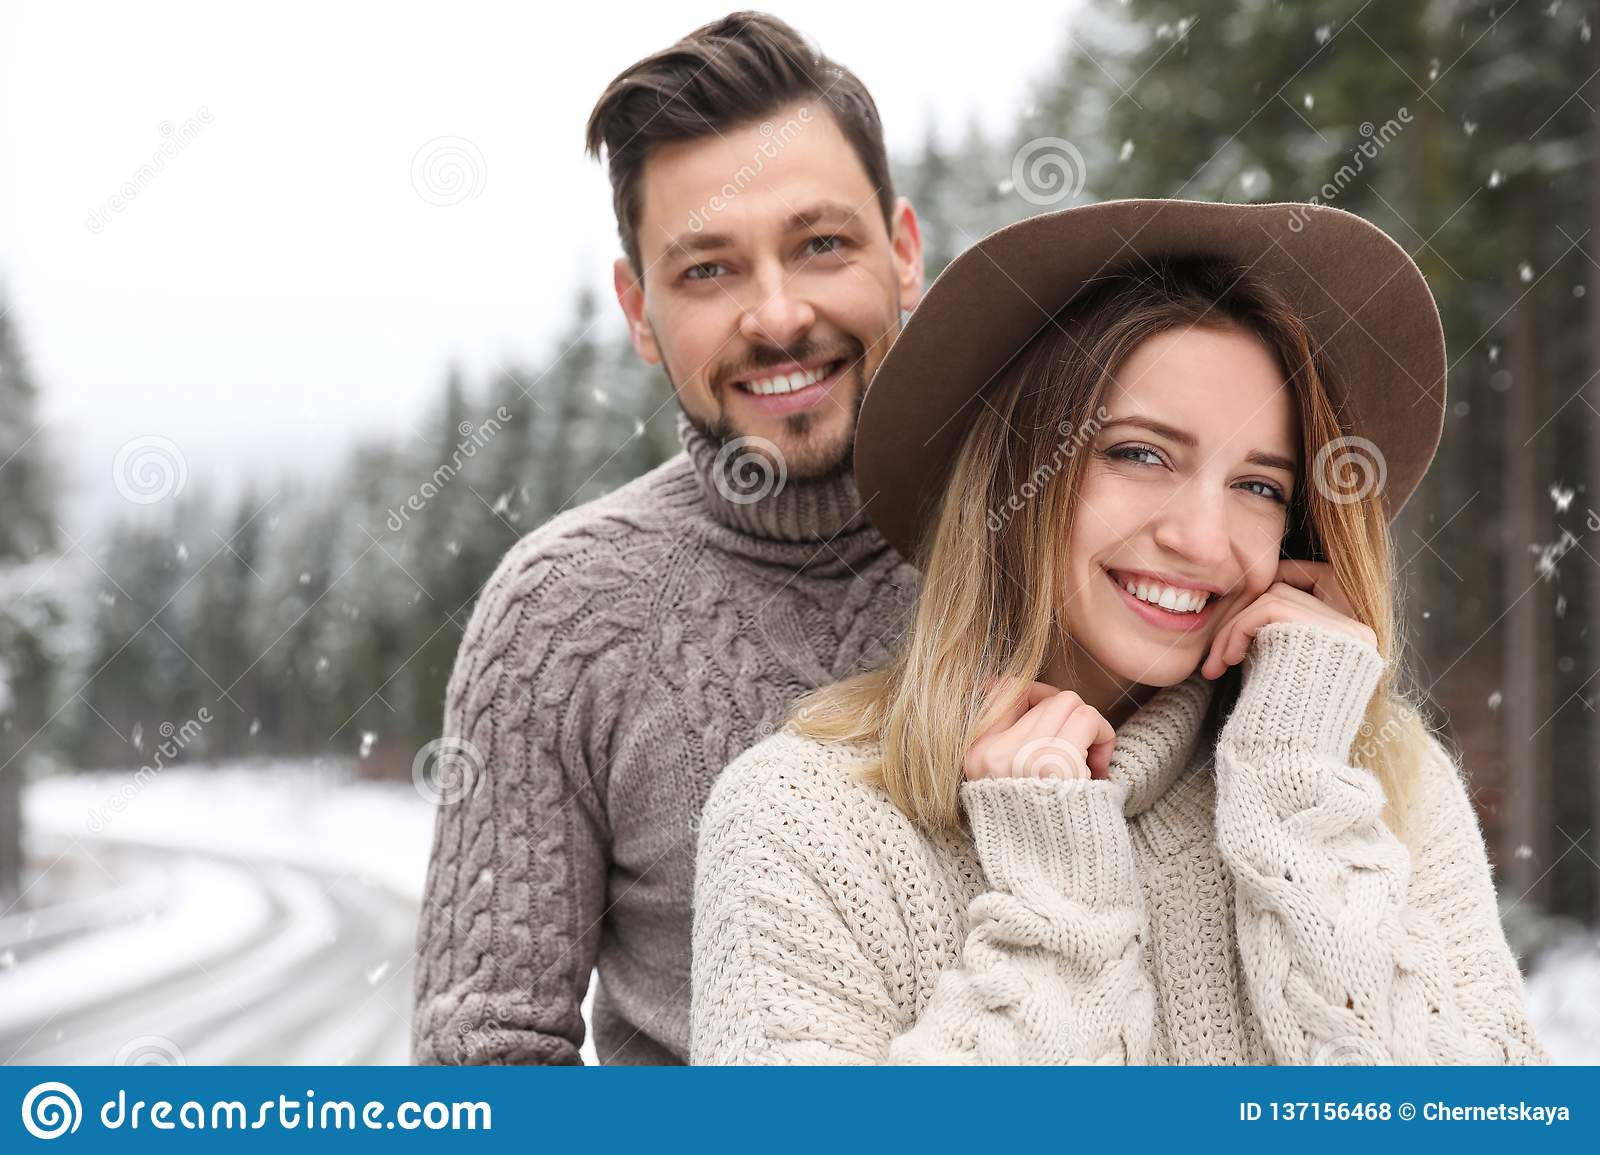 Cute couple outdoors on snowy day. Winter